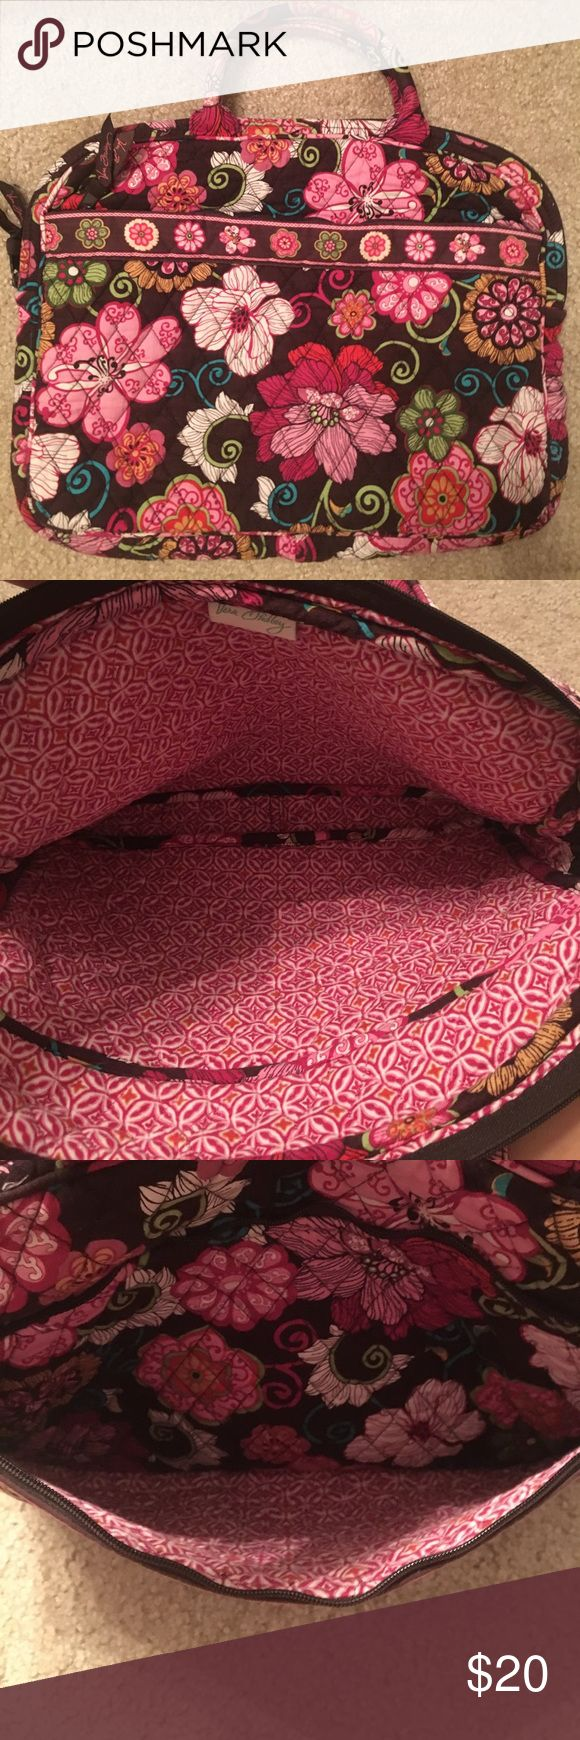 Vera Bradley laptop bag Great condition! Used, but still a ton of life left. I used it until I got my new computer, which doesn't fit in this bag. Make an offer or add to a bundle!! Vera Bradley Bags Laptop Bags